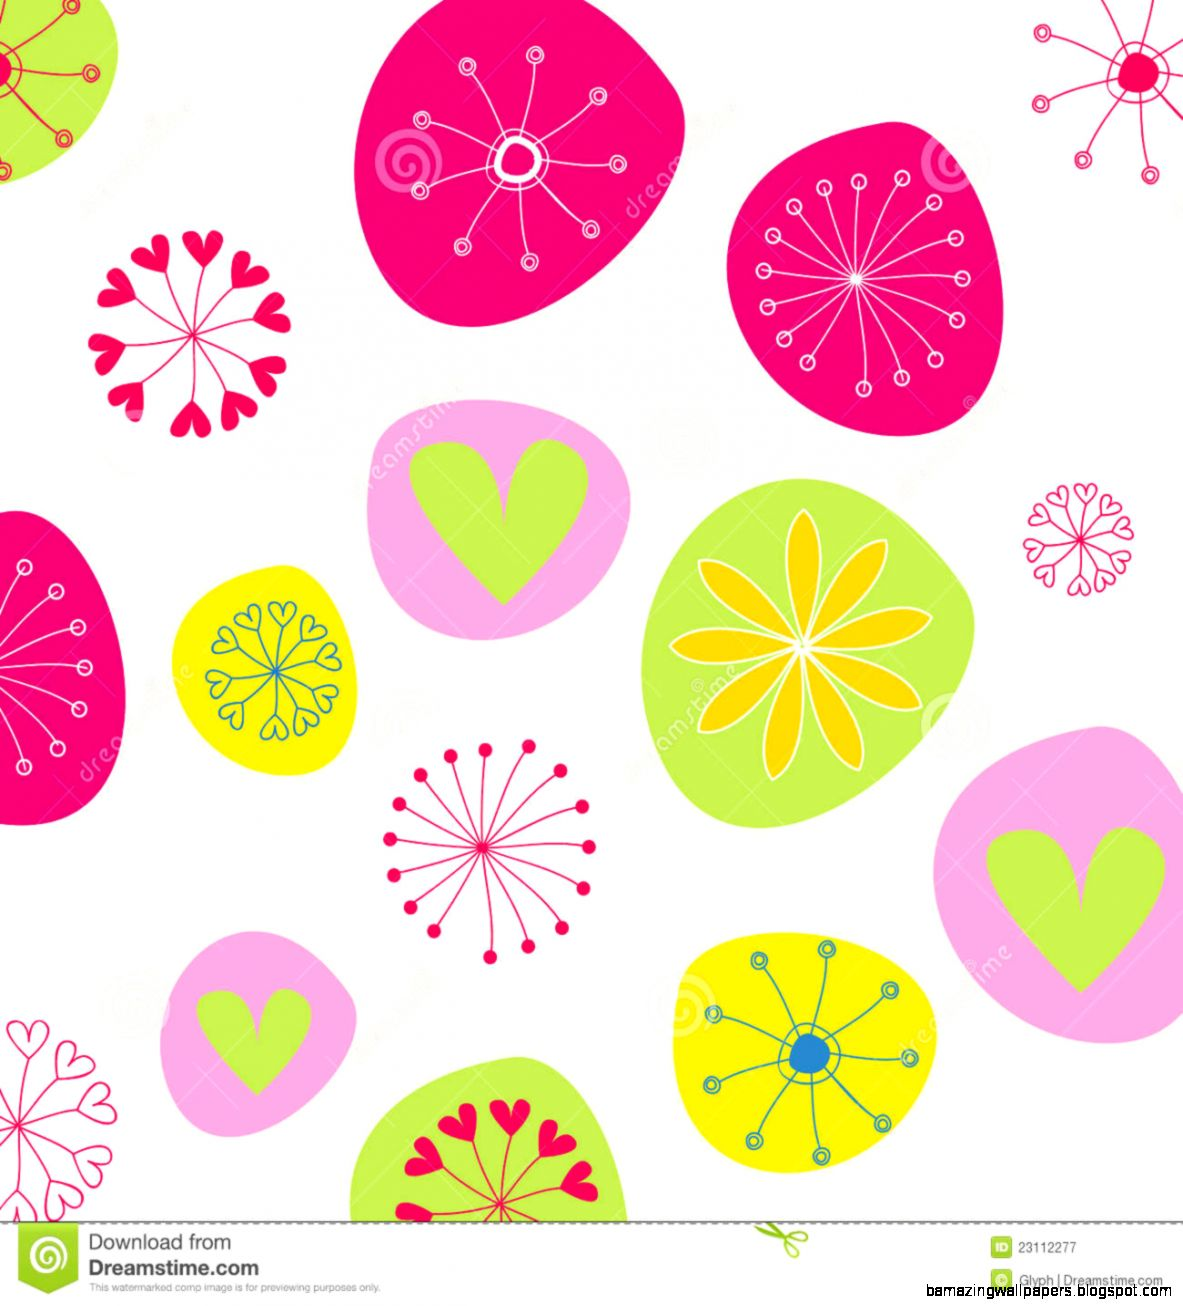 Cute Doodle Spring Background Illustration Royalty Free Stock